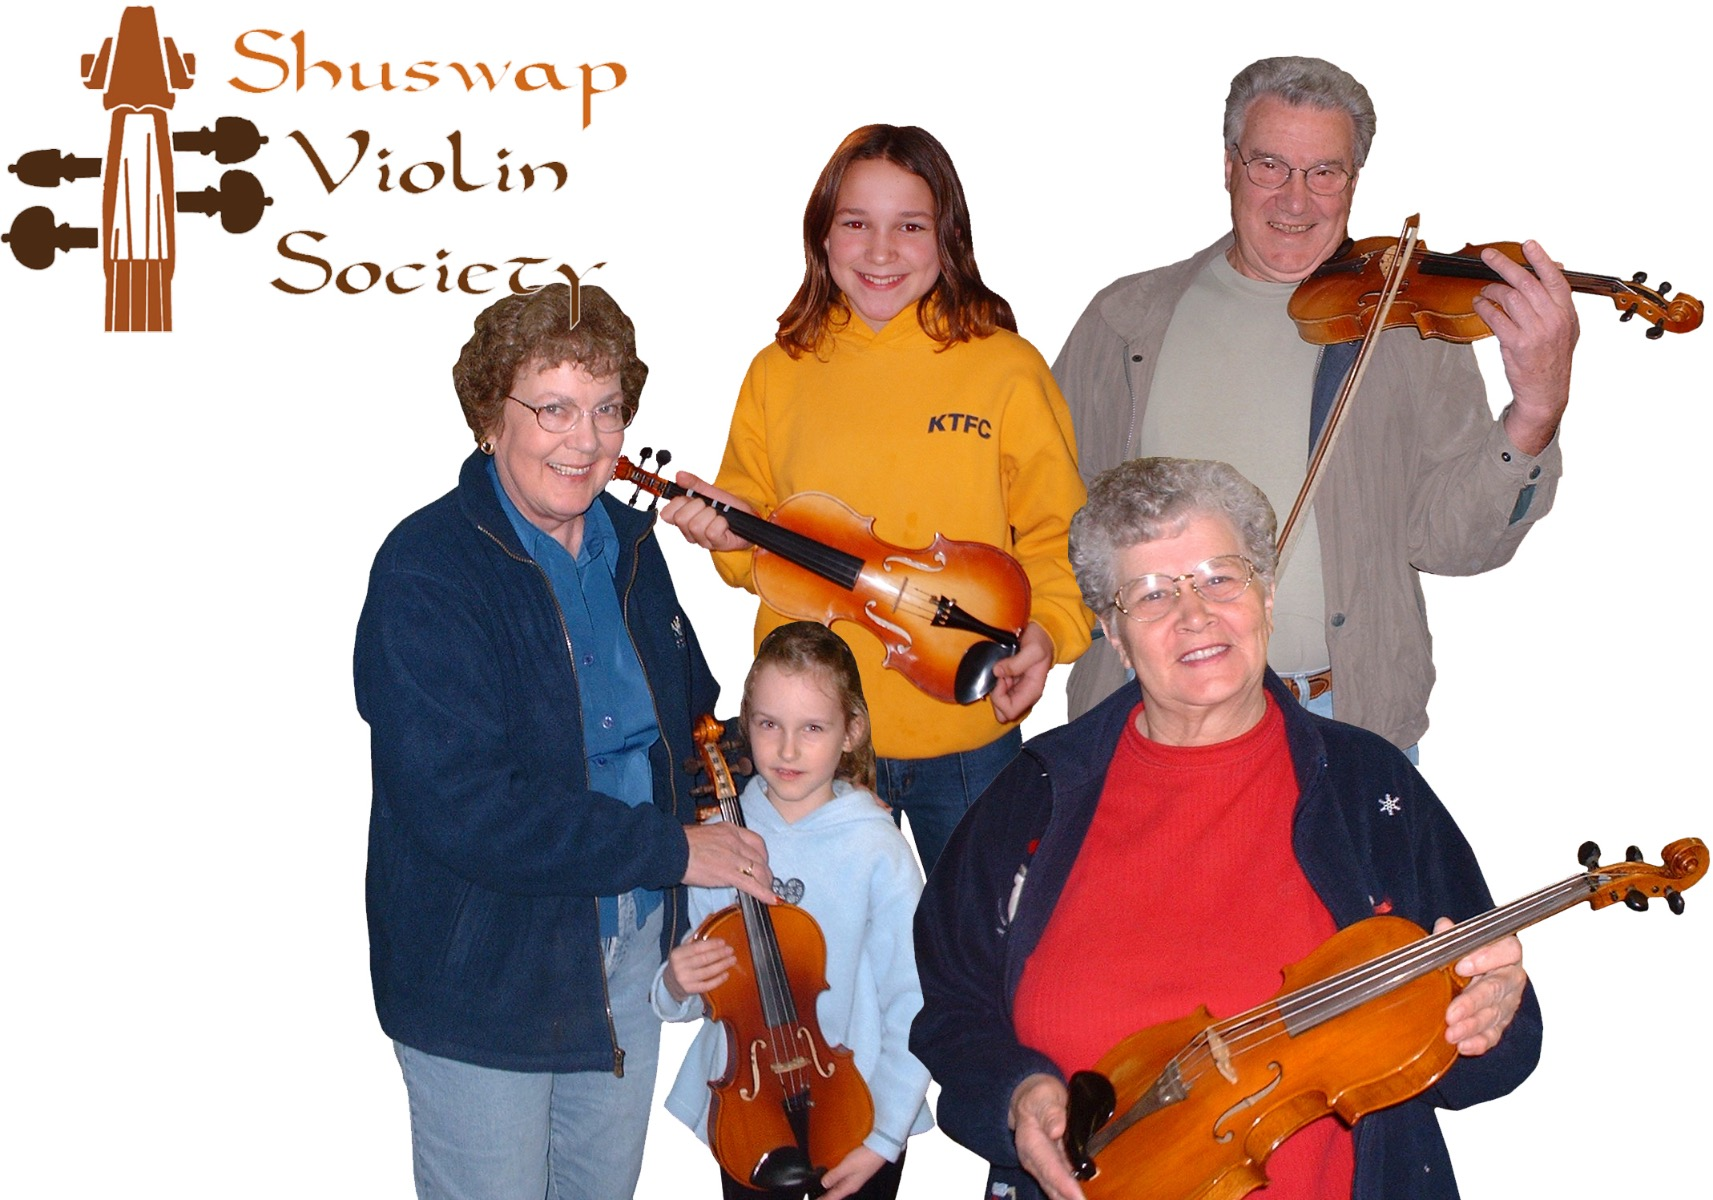 various seniors and children holding violins they have donated